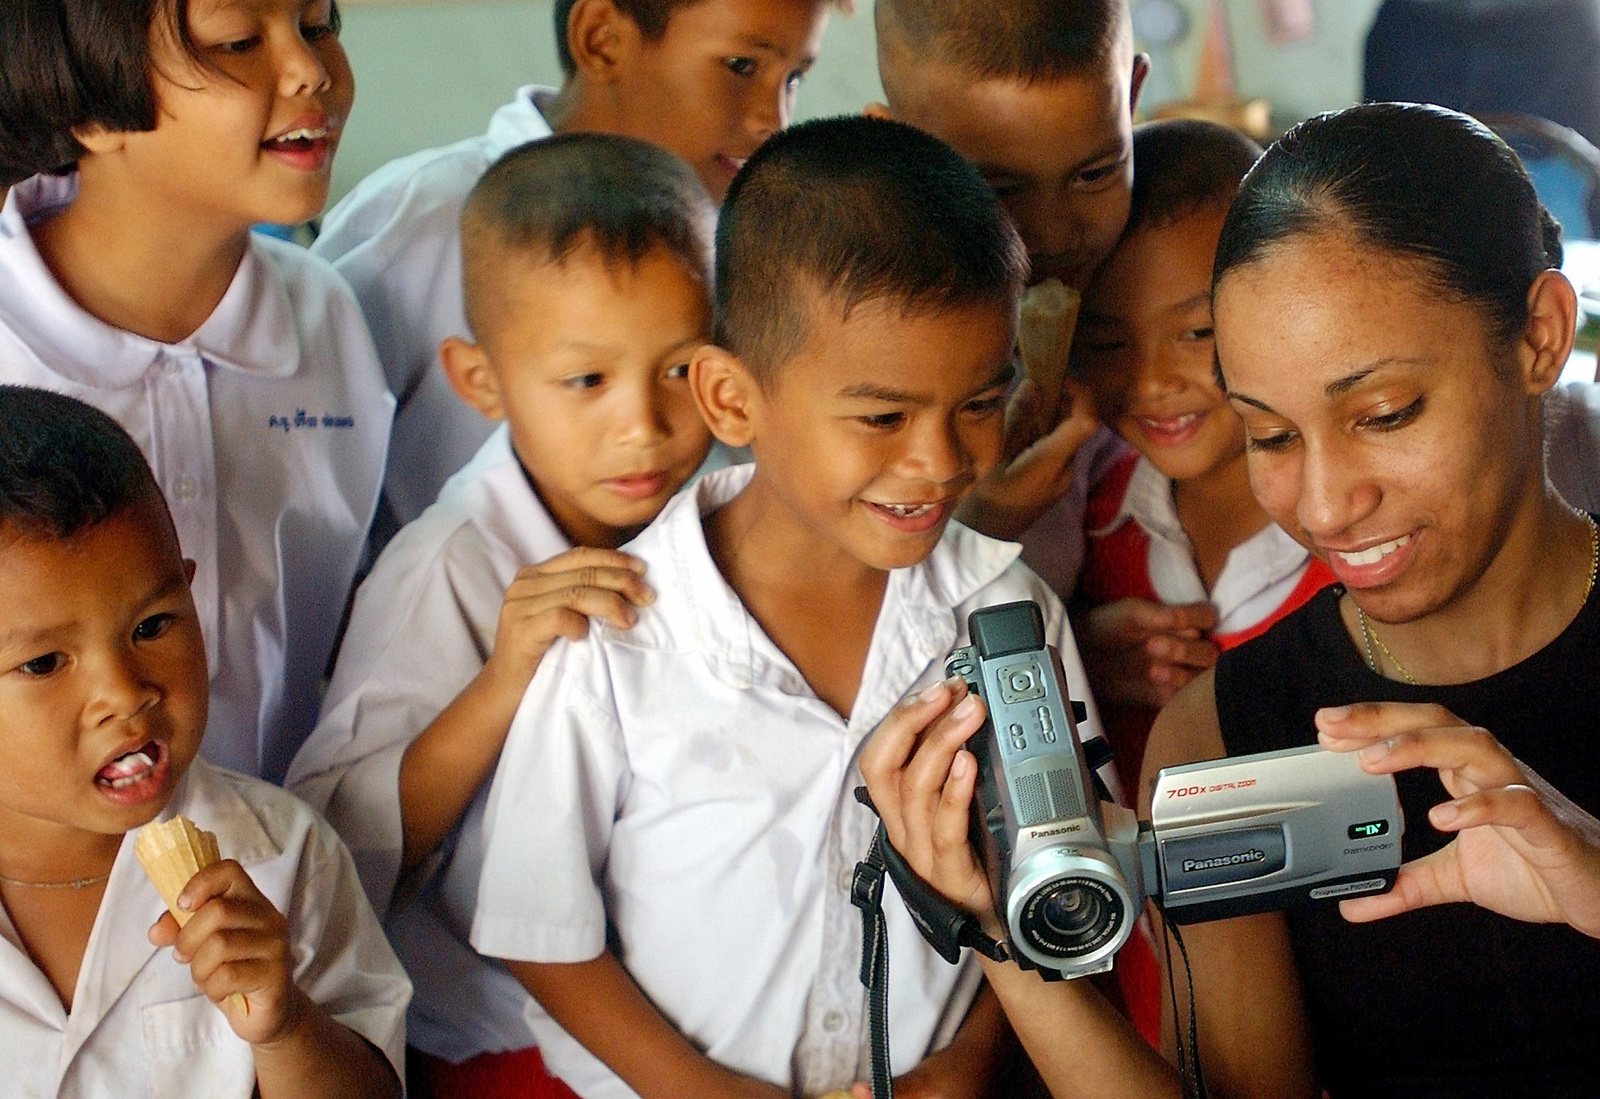 US Marine Corps (USMC) Private First Class (PFC) Vivian E. Lantigua, assigned to the Marine Air Logistics Squadron, shares her digital pictures with School Children during a community outreach event conducted during Exercise COPE TIGER 2003. Exercise participants raised money to purchased supplies that were donated to the school during the community outreach event. Cope Tiger is an annual multinational exercise in the Asia-Pacific region that promotes closer relations and enables air force units in the region to sharpen air combat skill and practice interoperability with US Forces